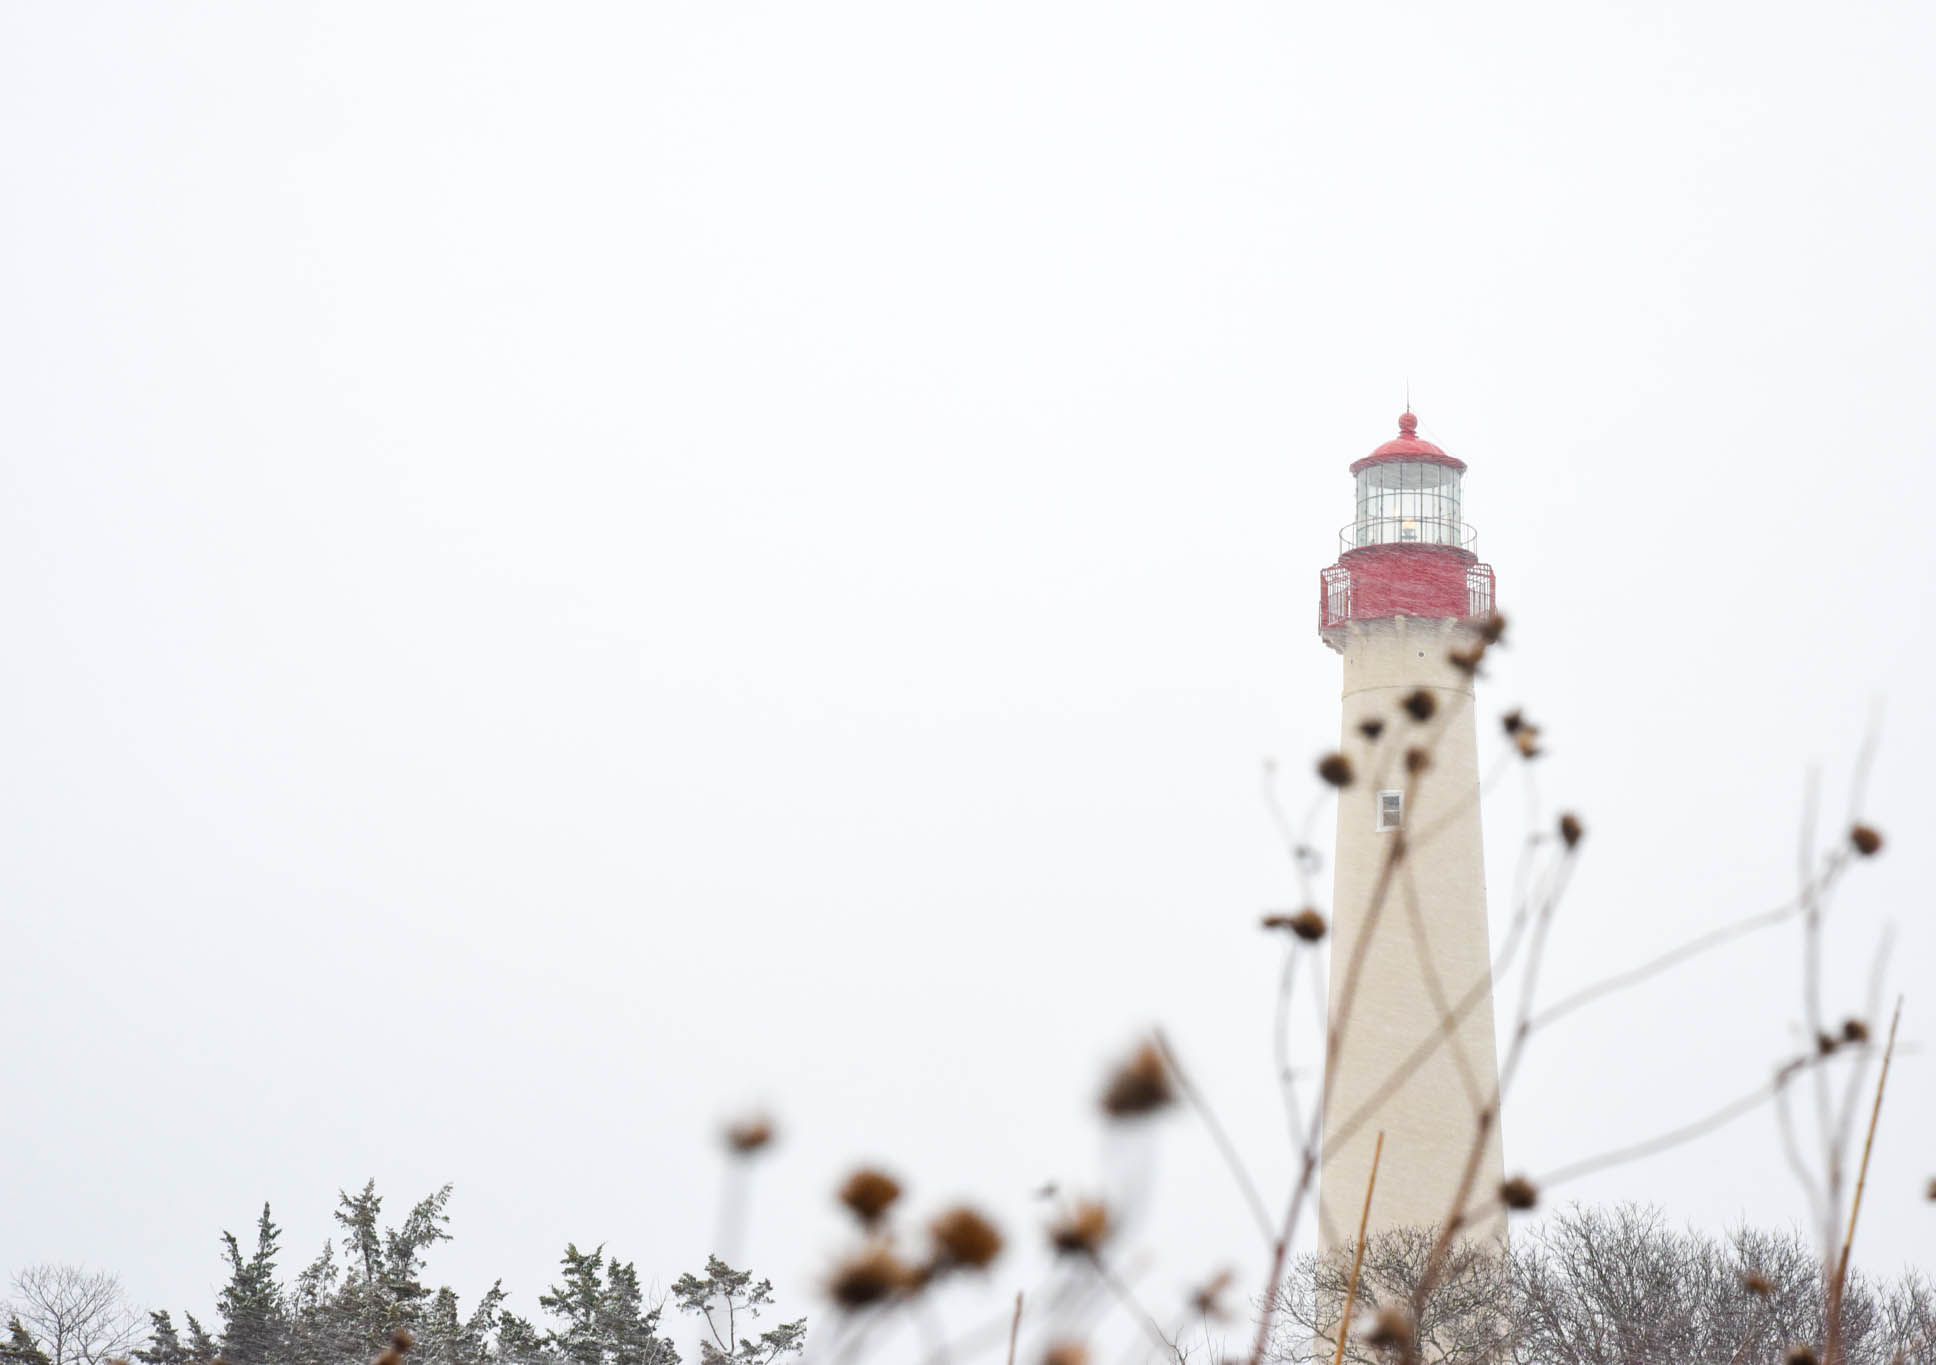 The Cape May Lighthouse on a snowy day.